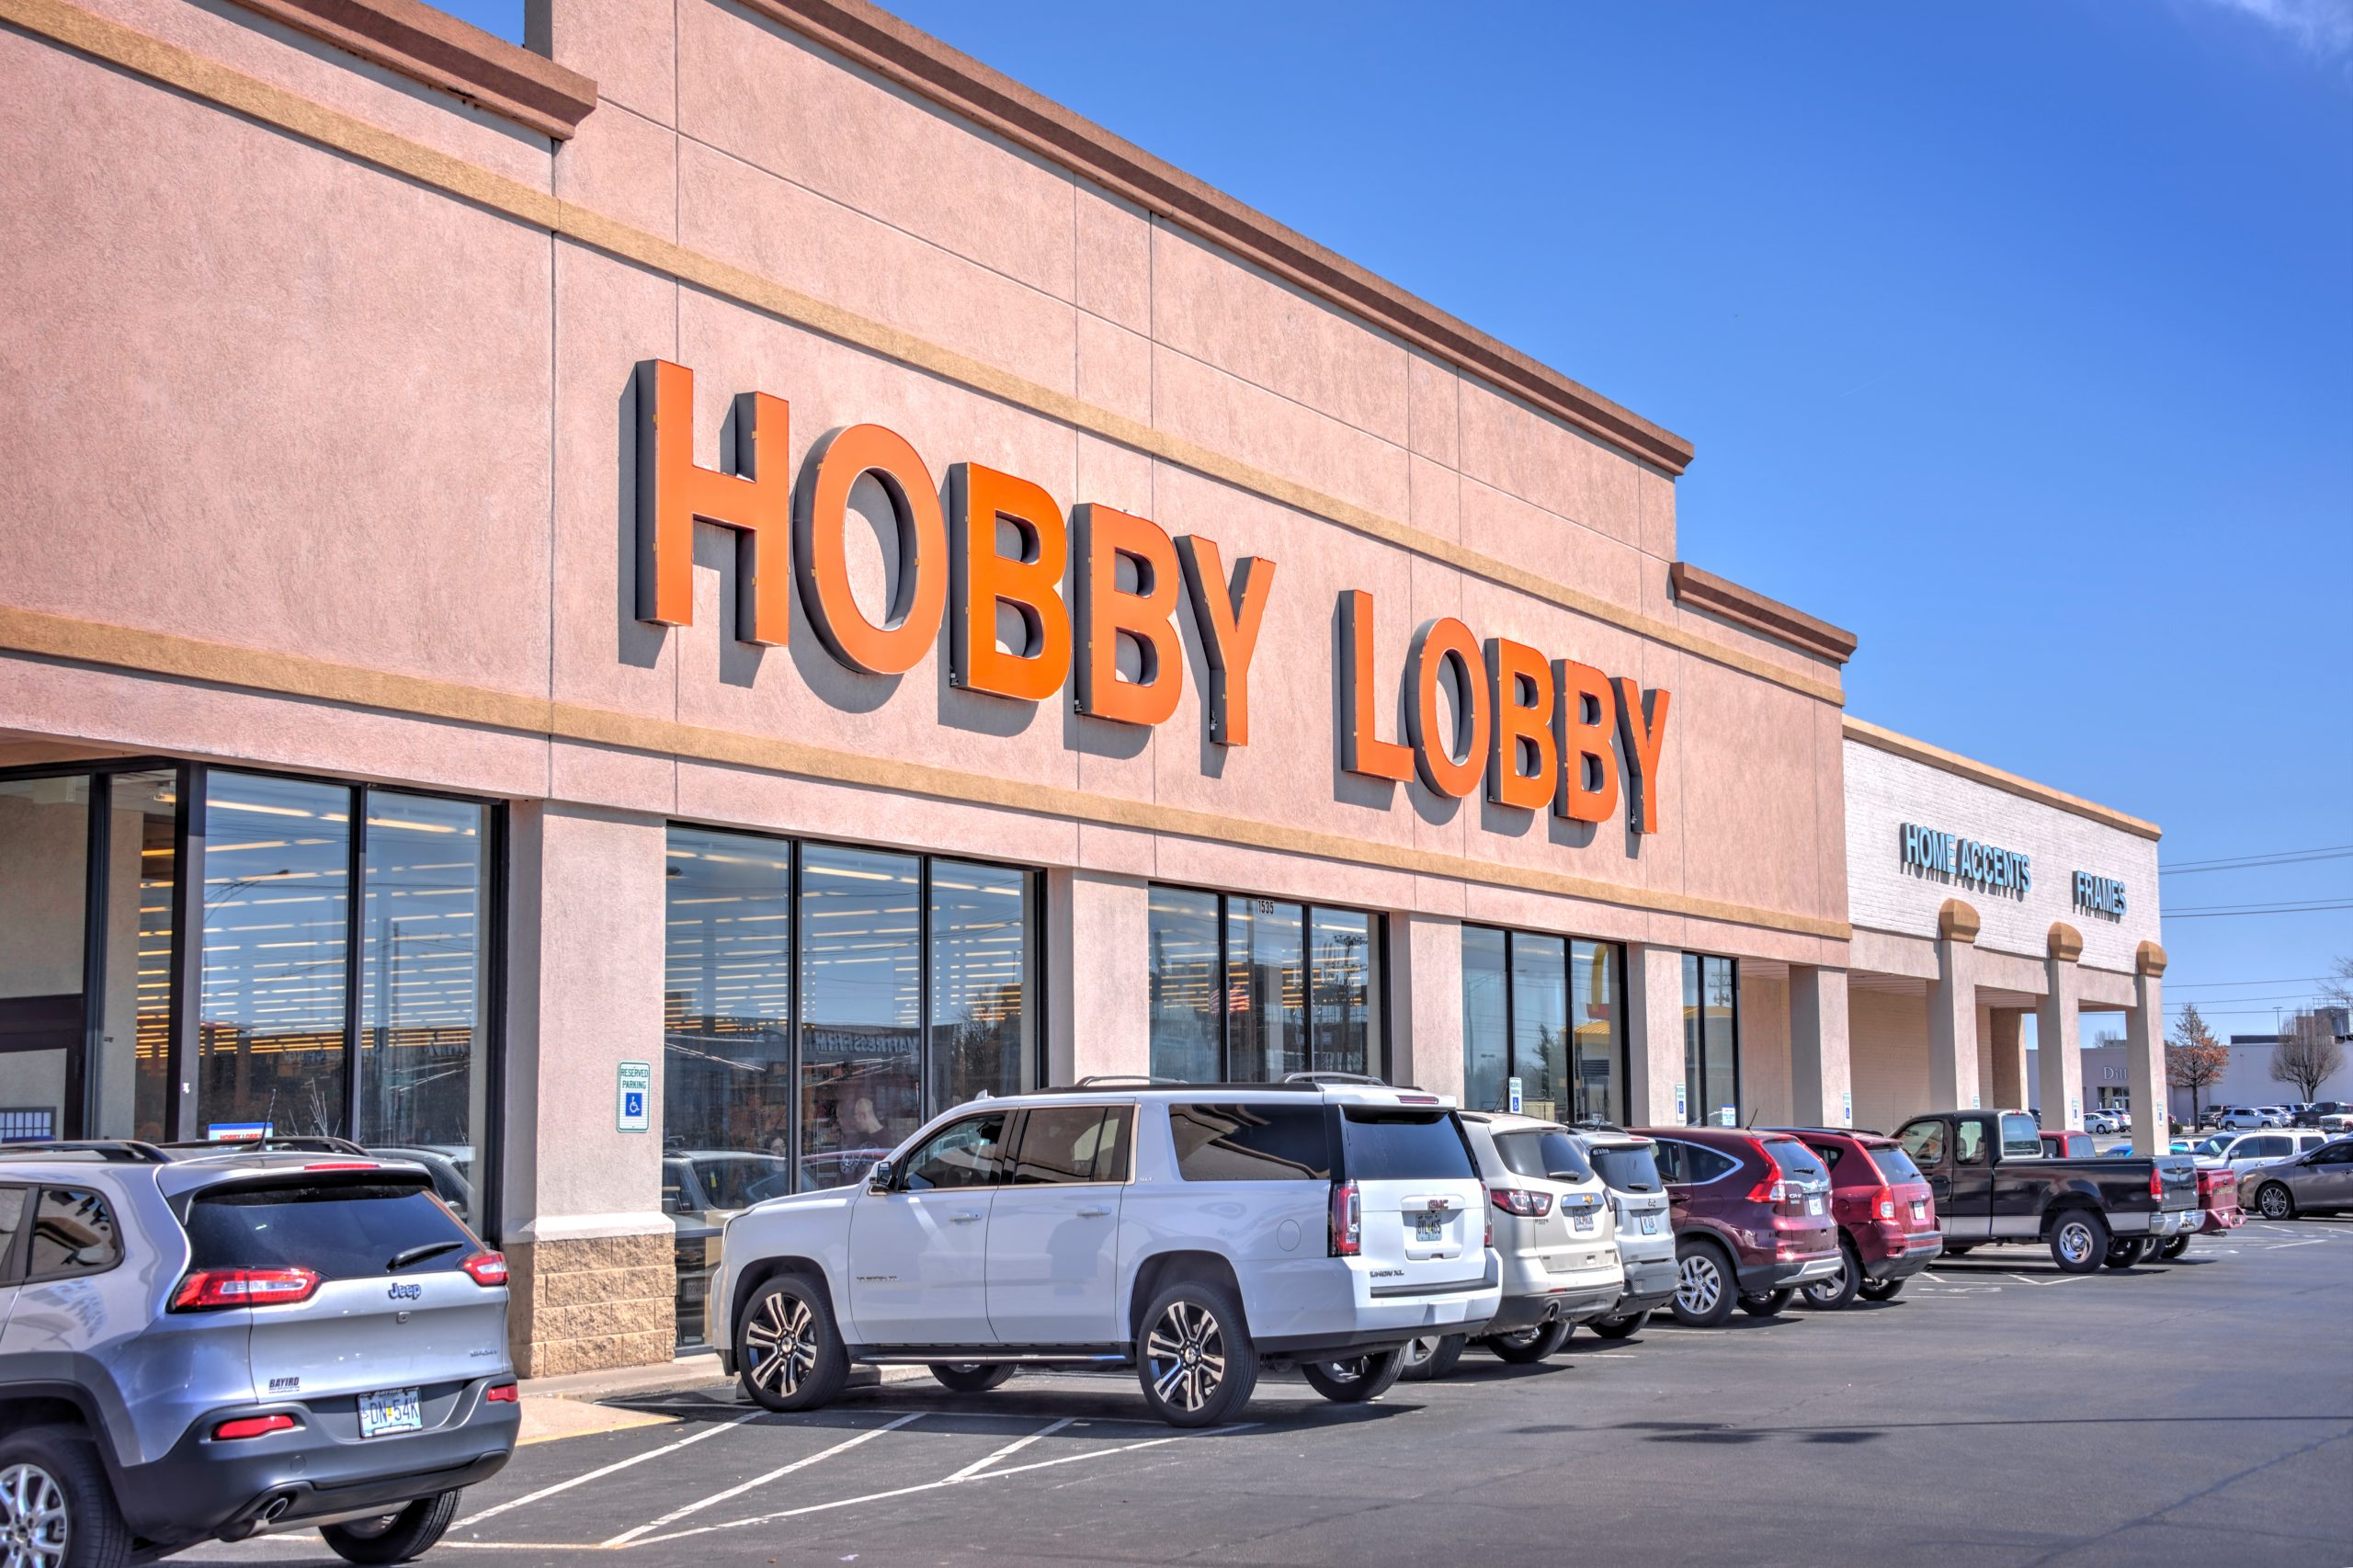 Springfield, Missouri - March 22, 2019: Hobby Lobby stores nationwide are defying coronavirus precaution measures